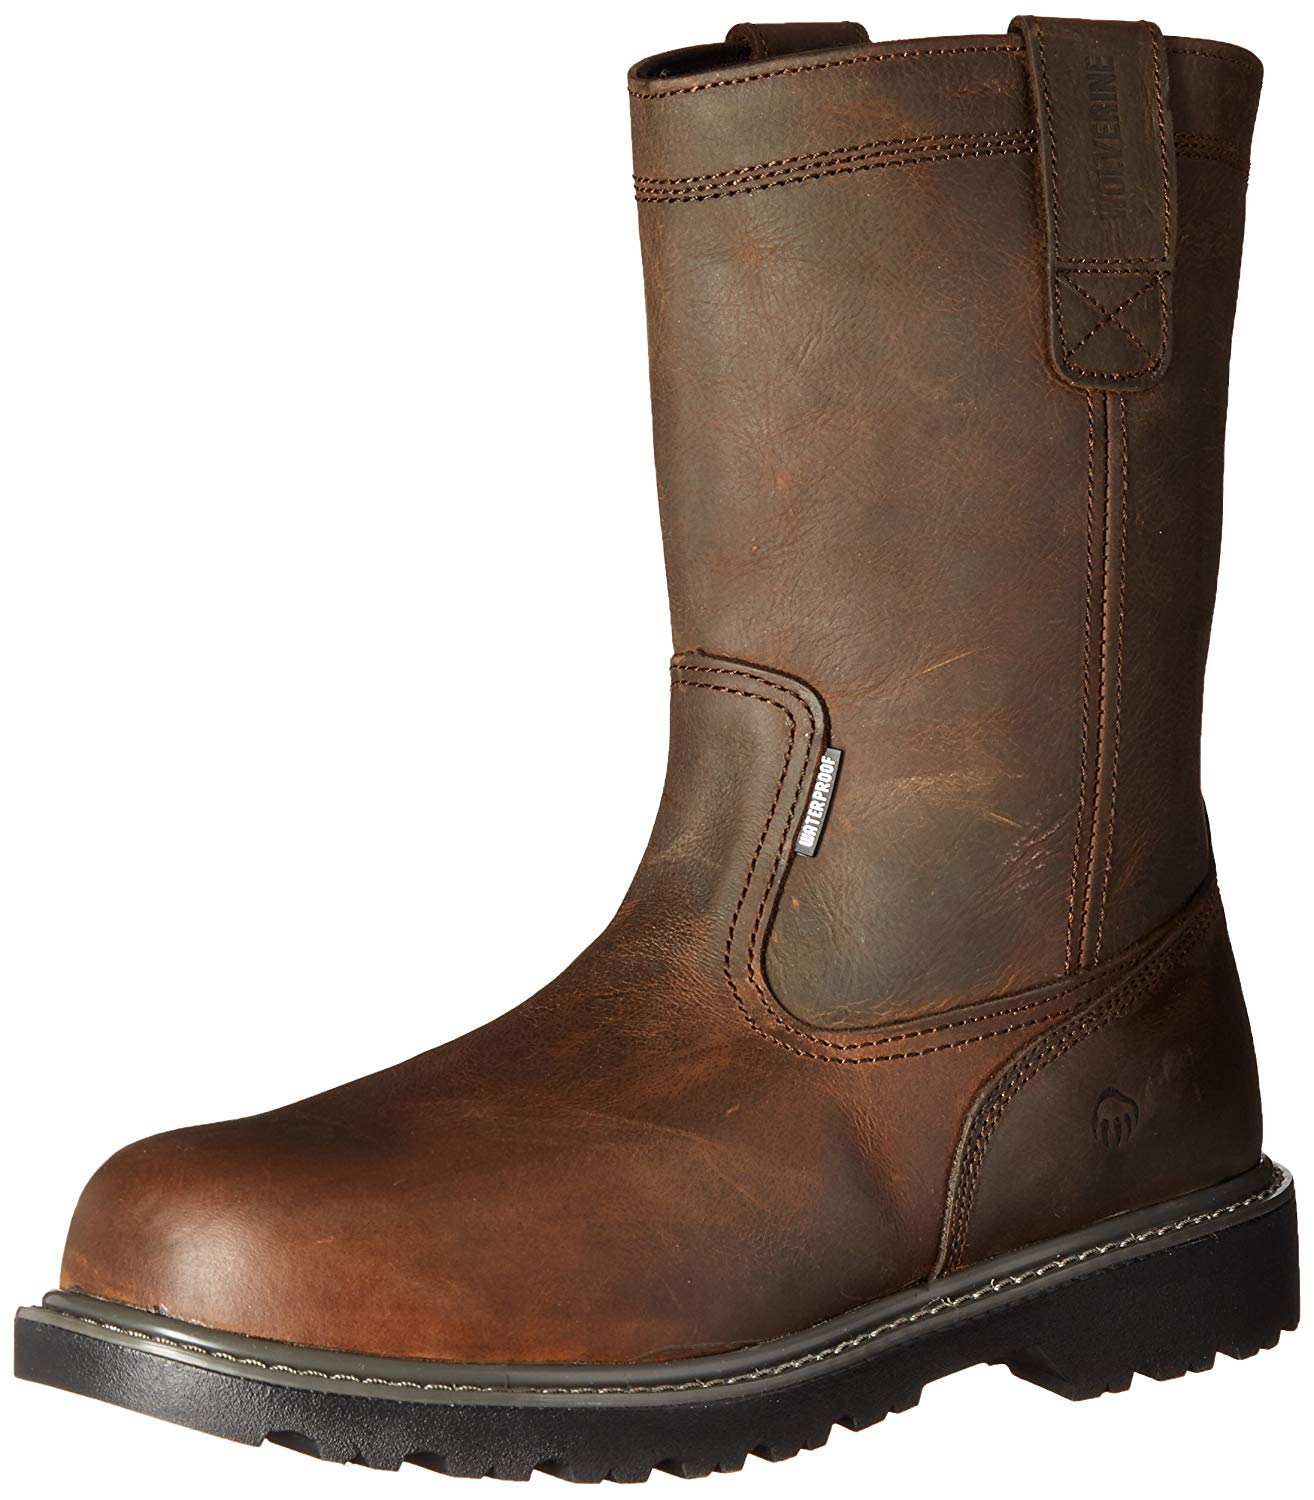 2cdc0667593 Details about Wolverine Men's Floorhand Waterproof 10